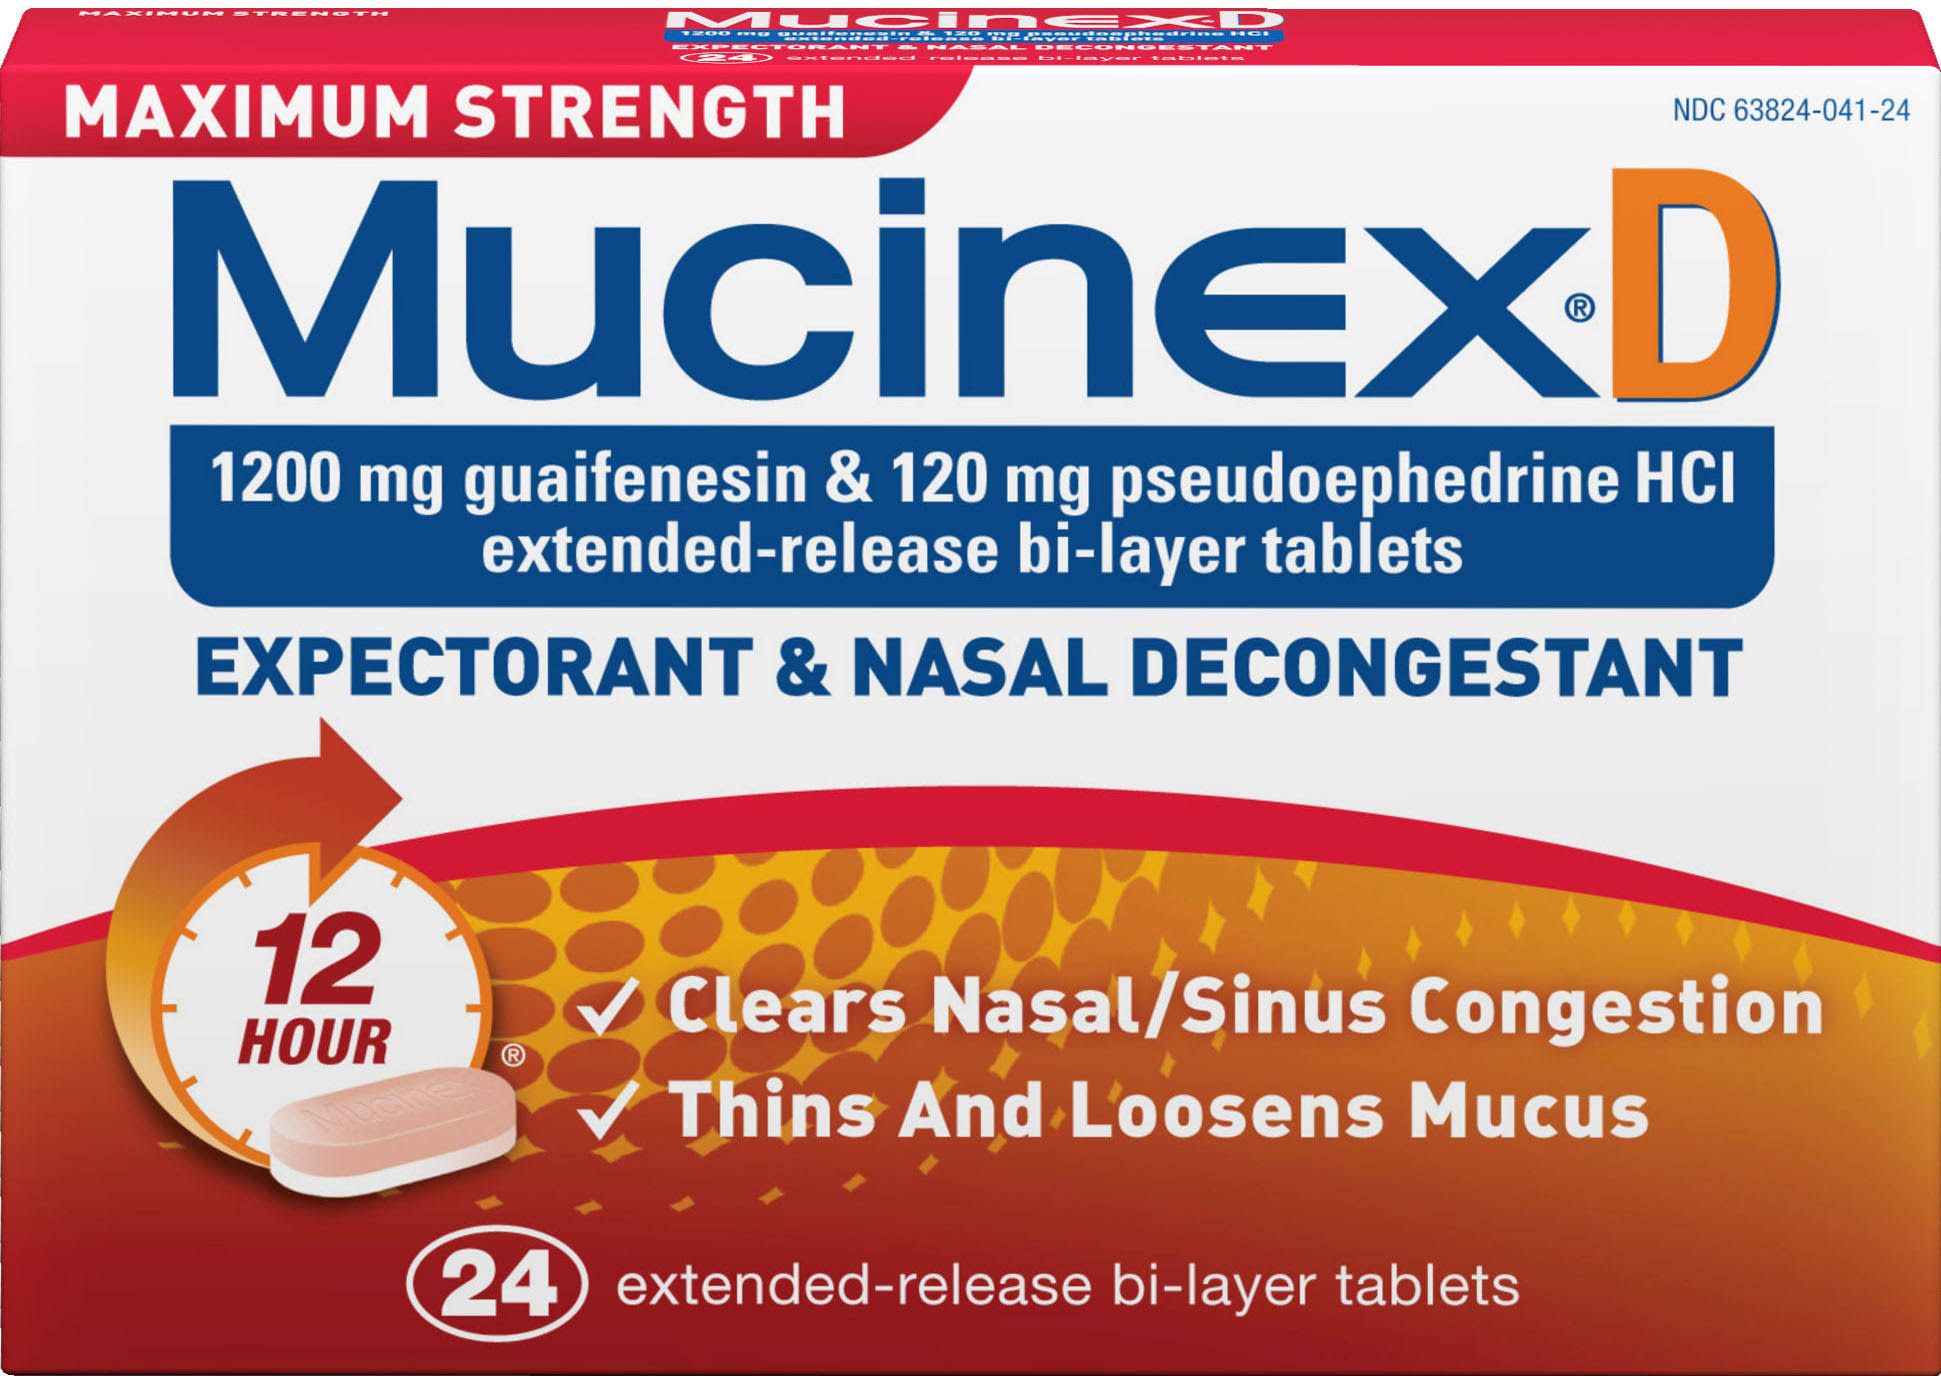 Mucinex D Maximum Strength Expectorant & Nasal Decongestant Tablets - x24